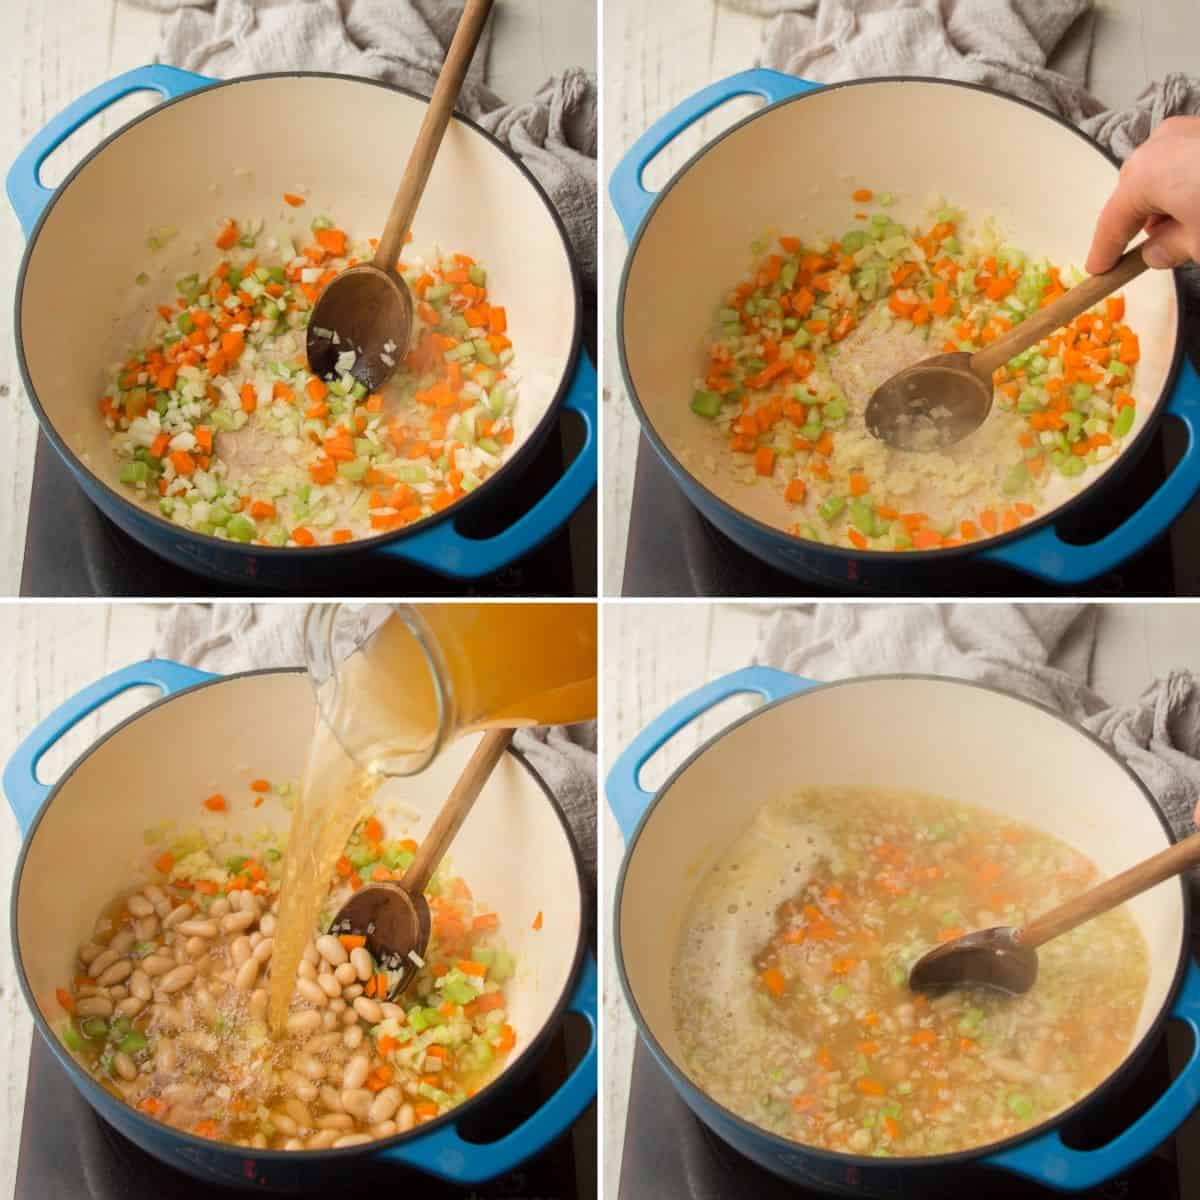 Collage Showing First 4 Steps of Making Zucchini Soup: Sweat Veggies, Add Garlic, Add Broth and Beans, and Simmer